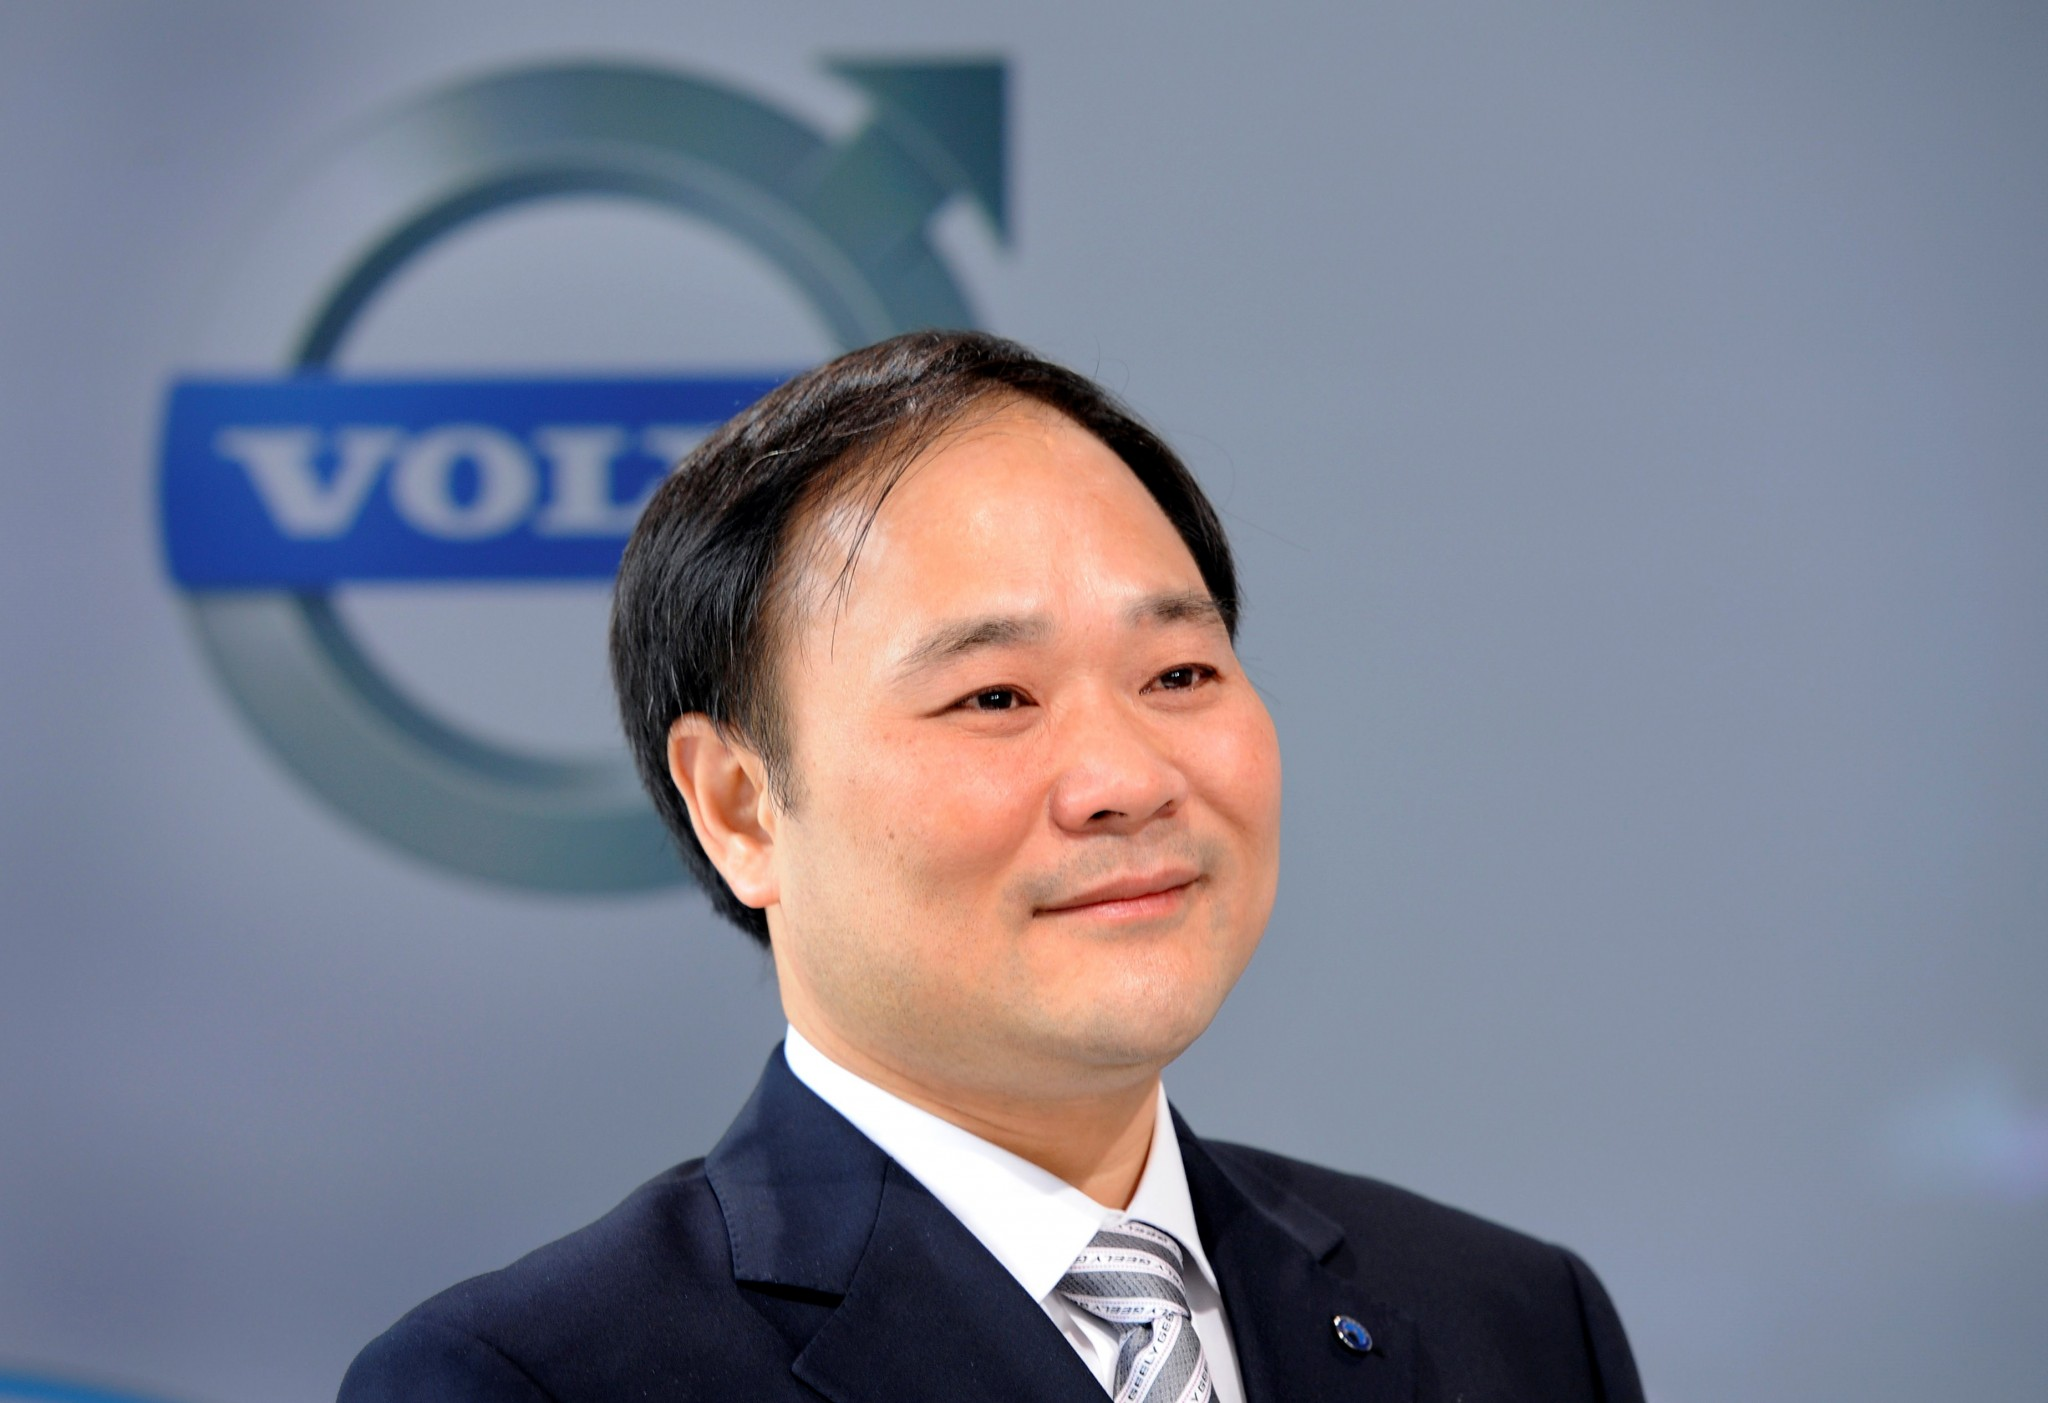 32229_Mr. Li Shufu, chairman Zhejiang Geely Holding Group Company Ltd